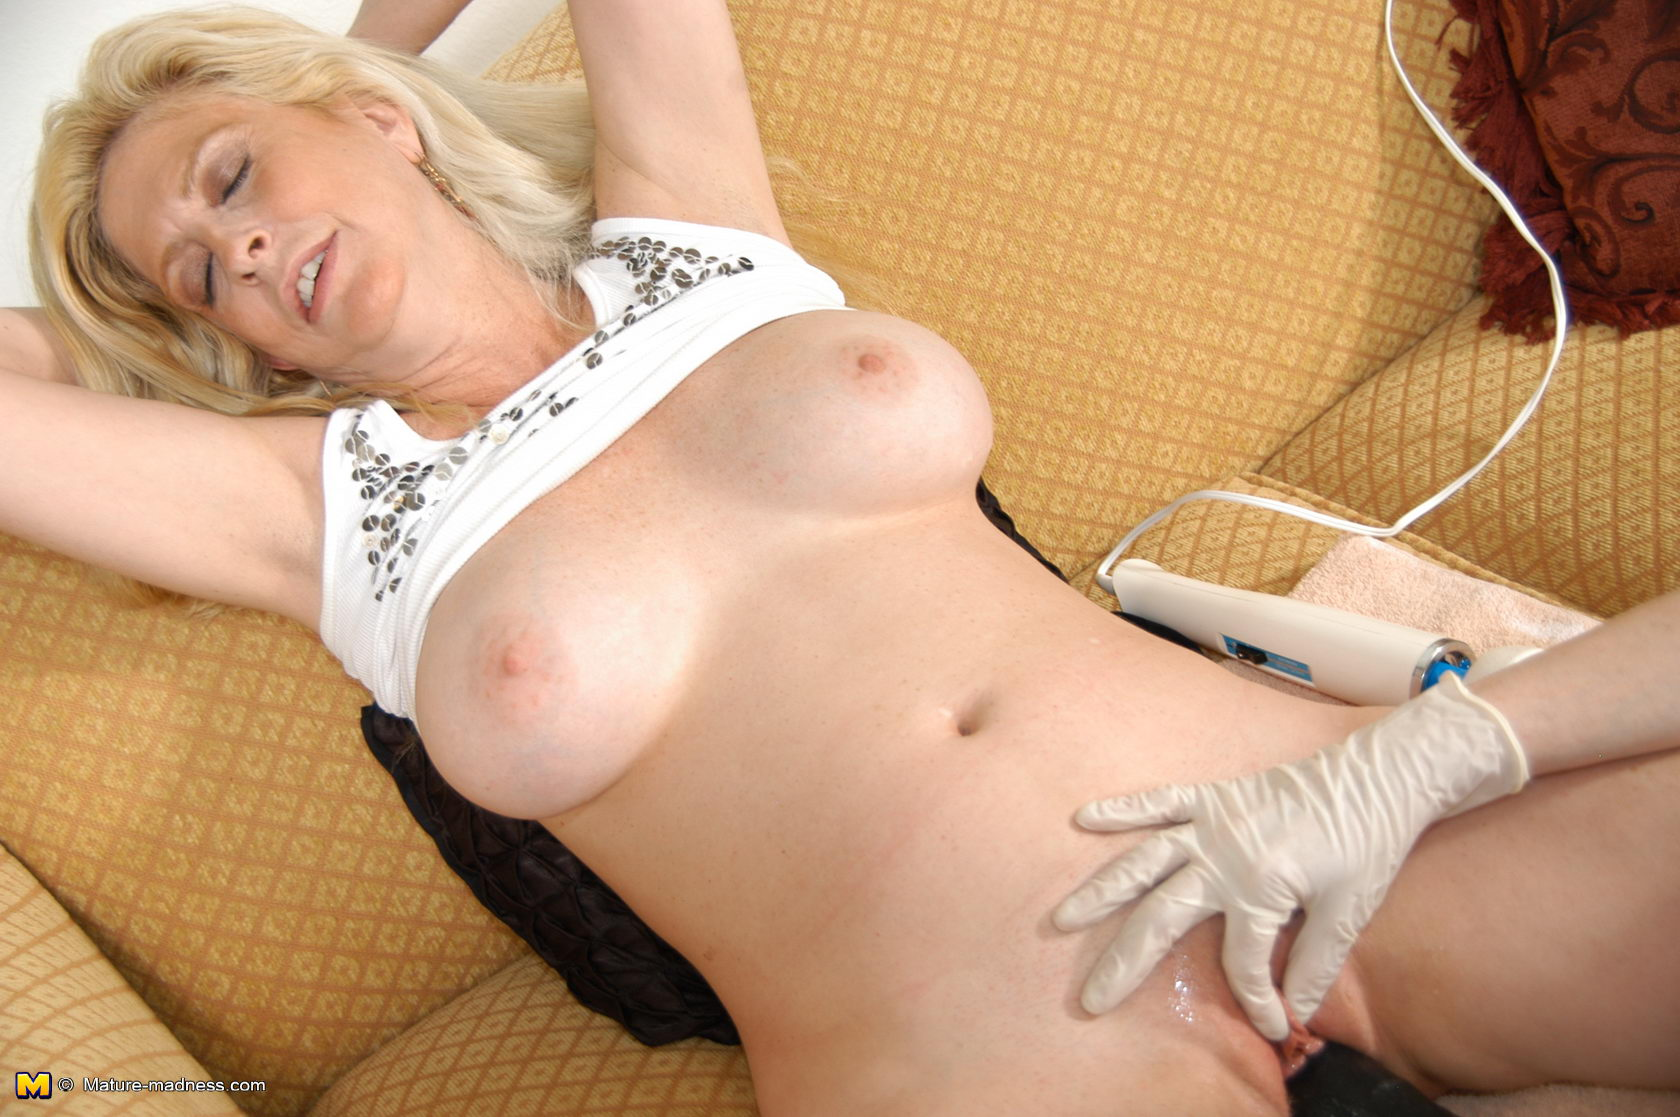 This hot mommy loves to get fisted